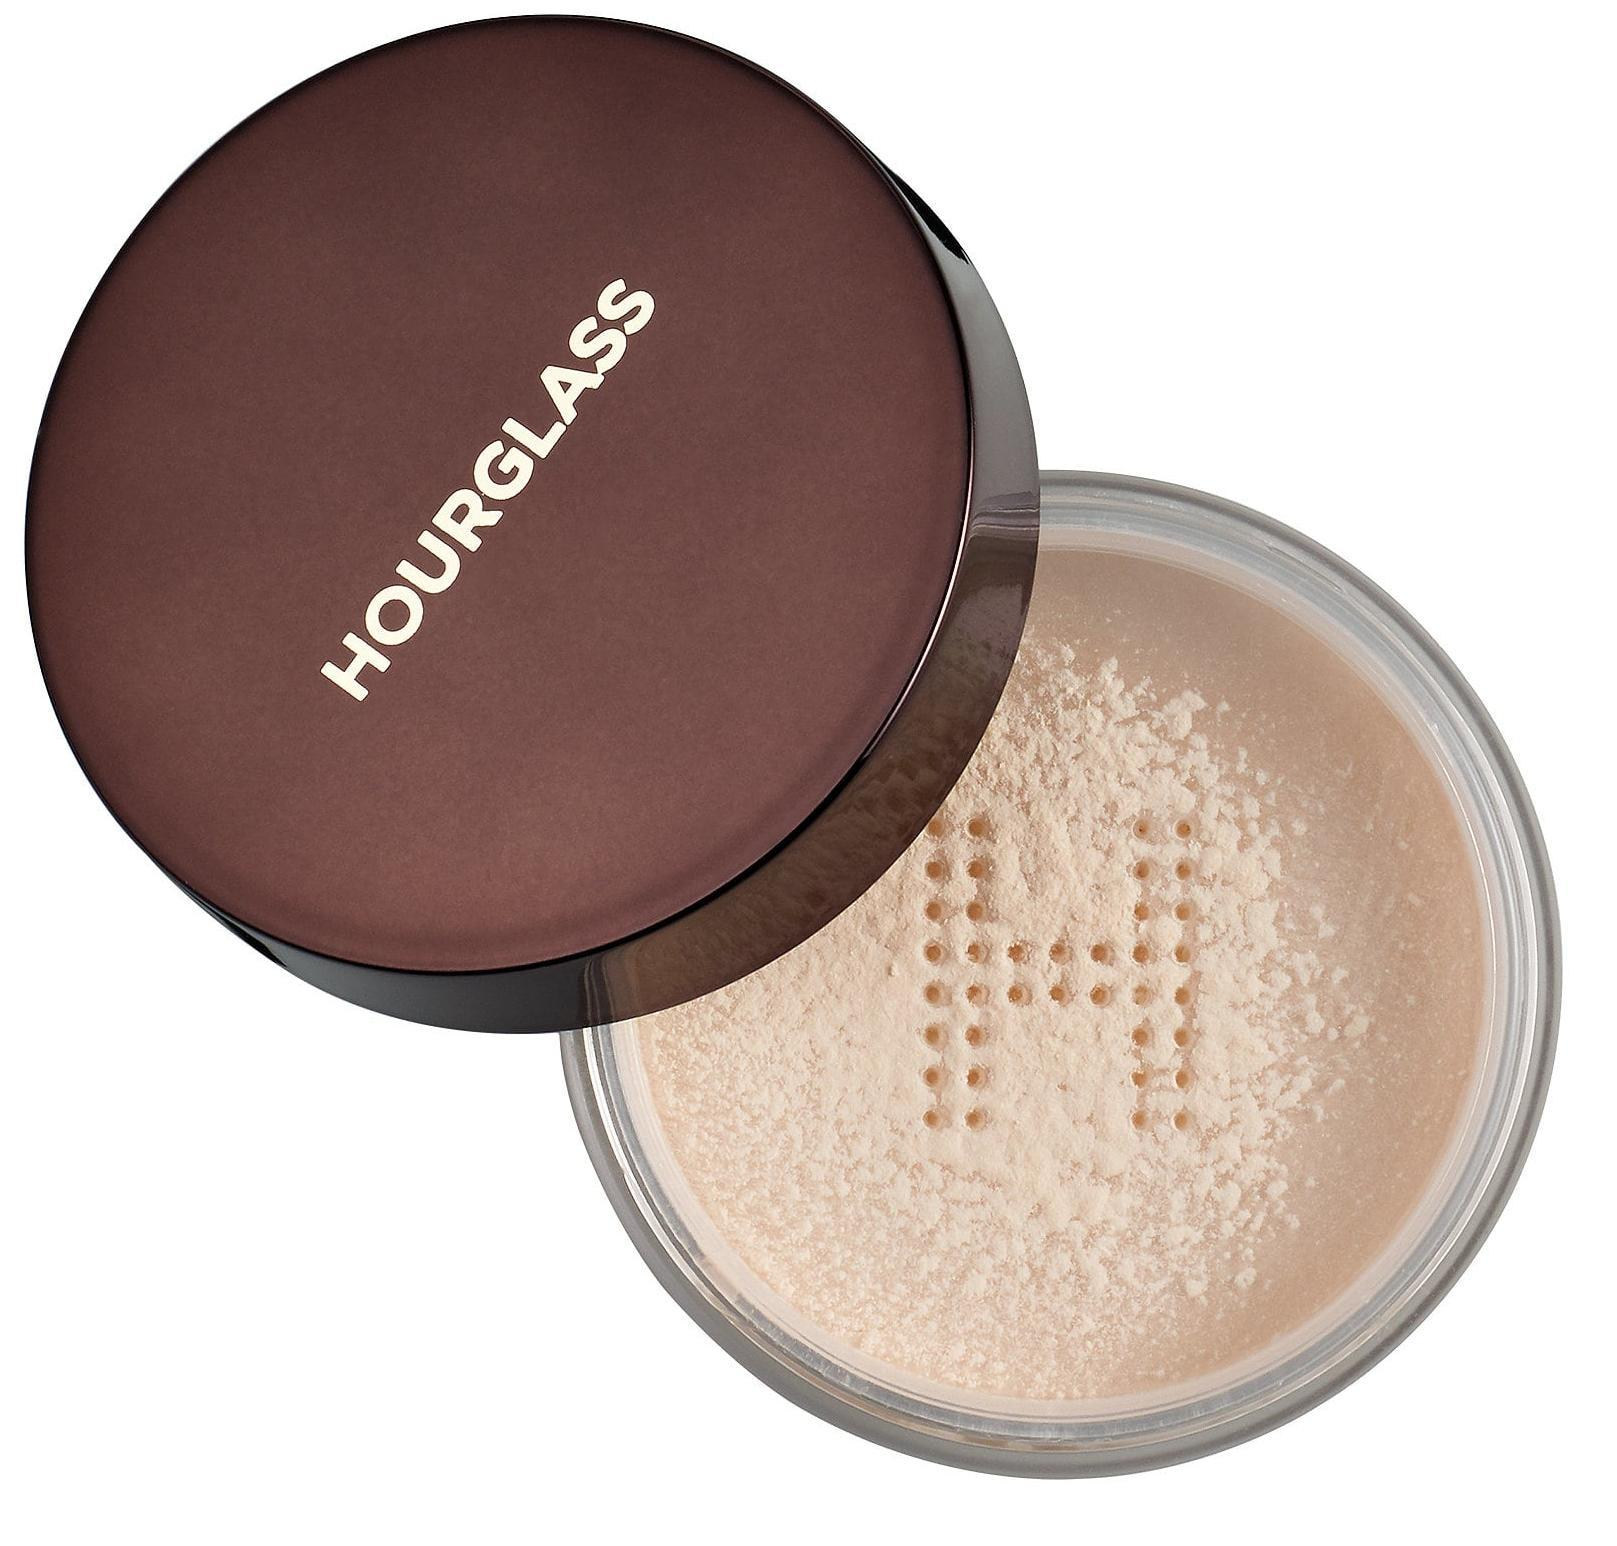 Hourglass Veil Translucent Setting Mini Powder Travel рассыпчатая пудра 2г